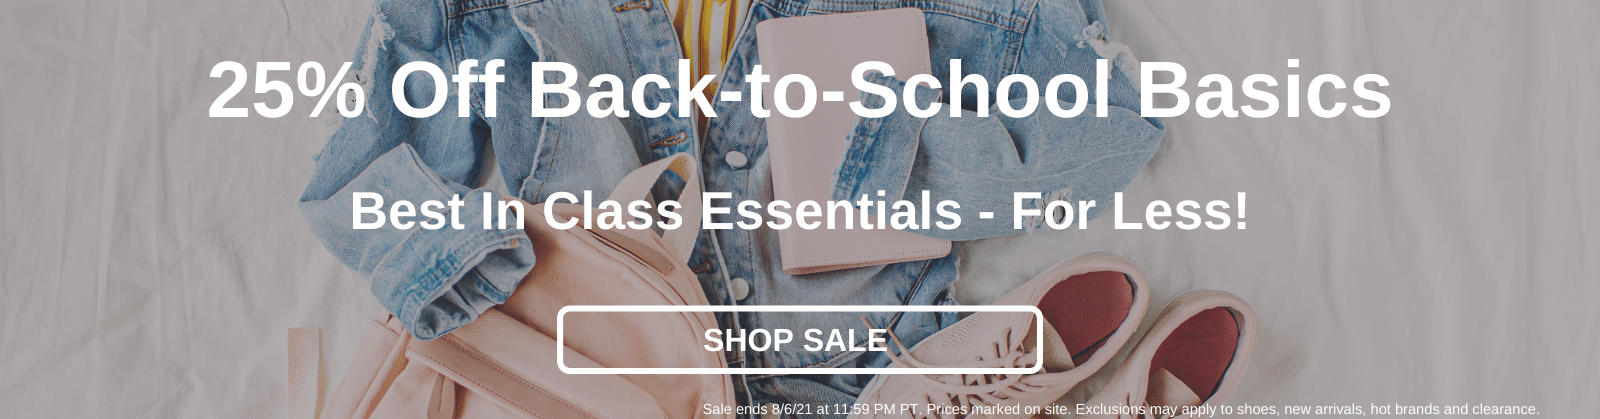 25% Off Back-to-School Basics Best In Class Essentials - For Less! [Shop Sale]